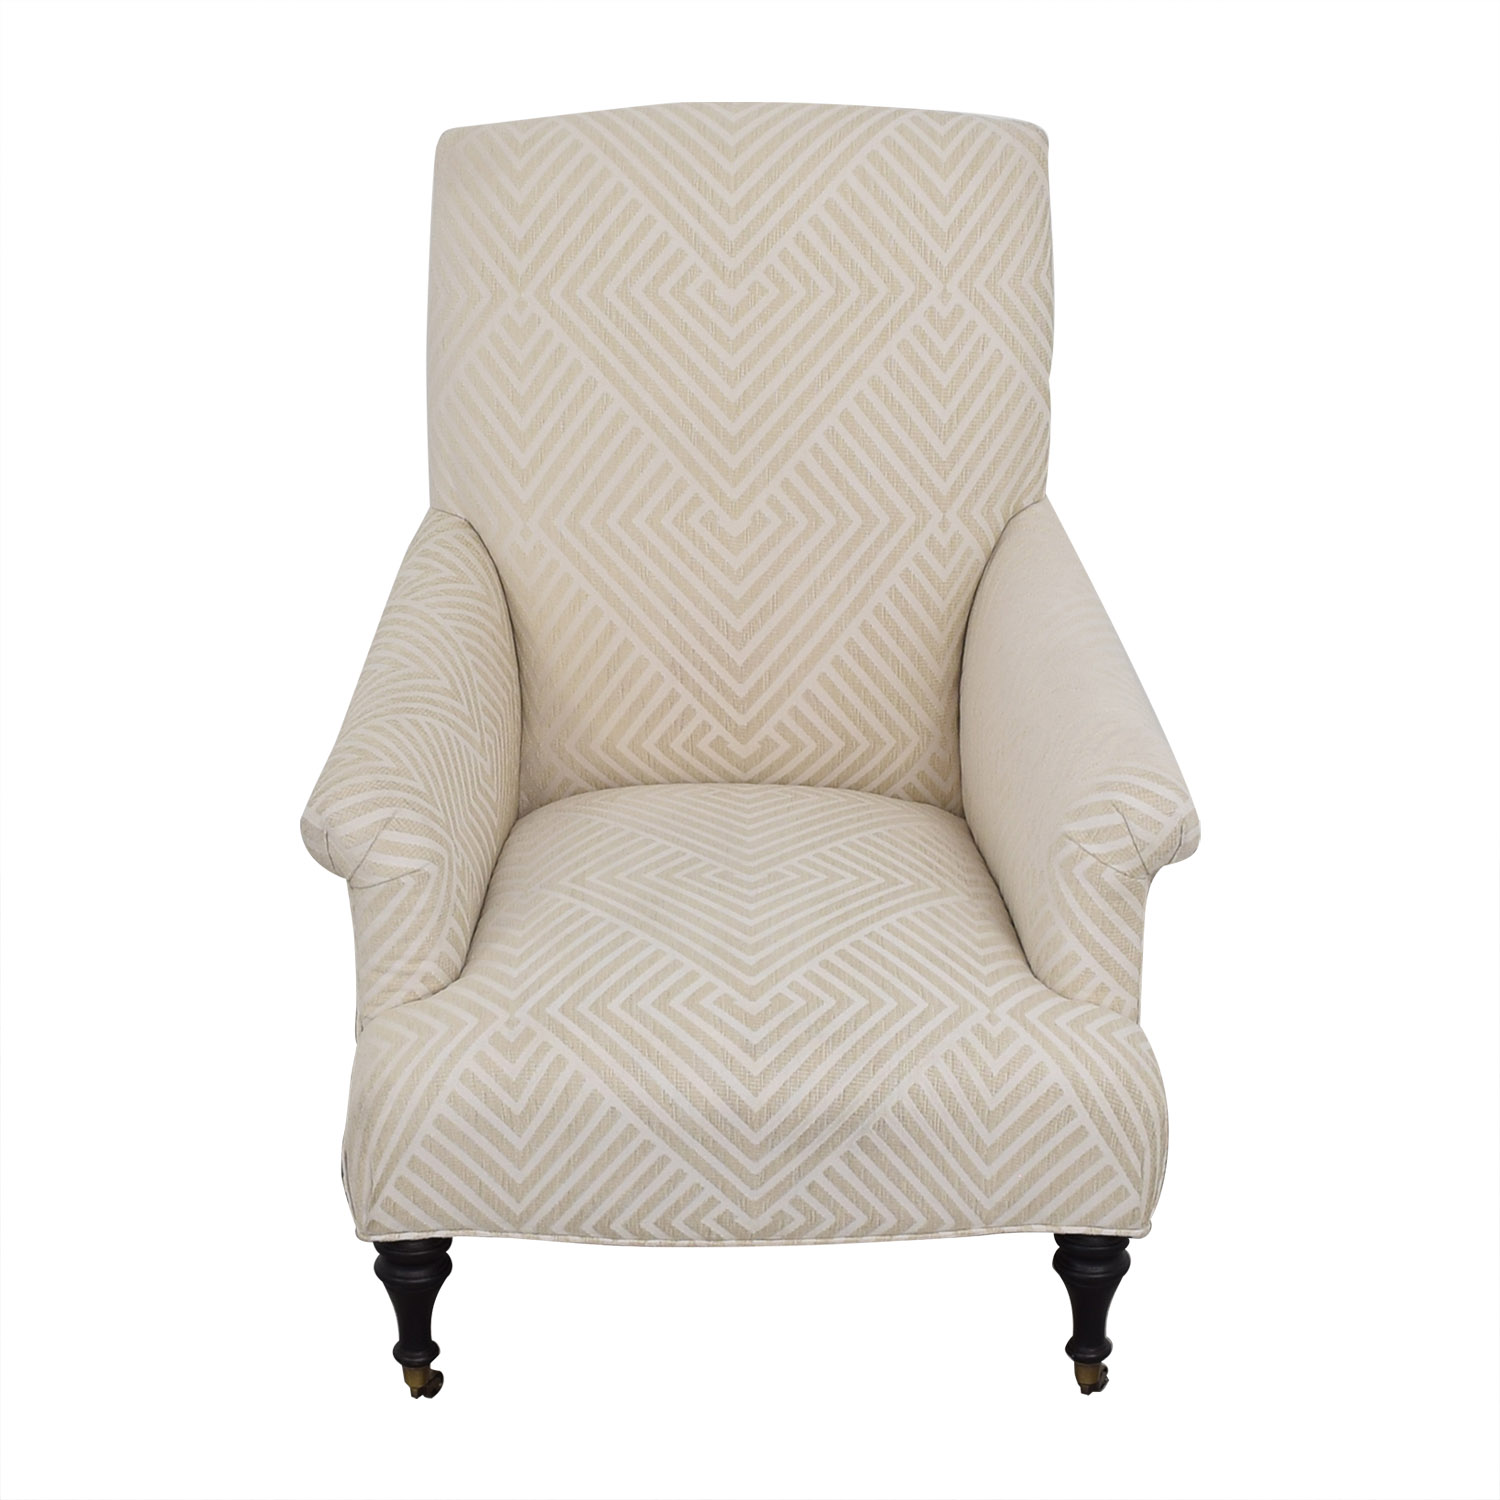 Mitchell Gold + Bob Williams Mitchell Gold + Bob Williams Upholstered Armchair on sale